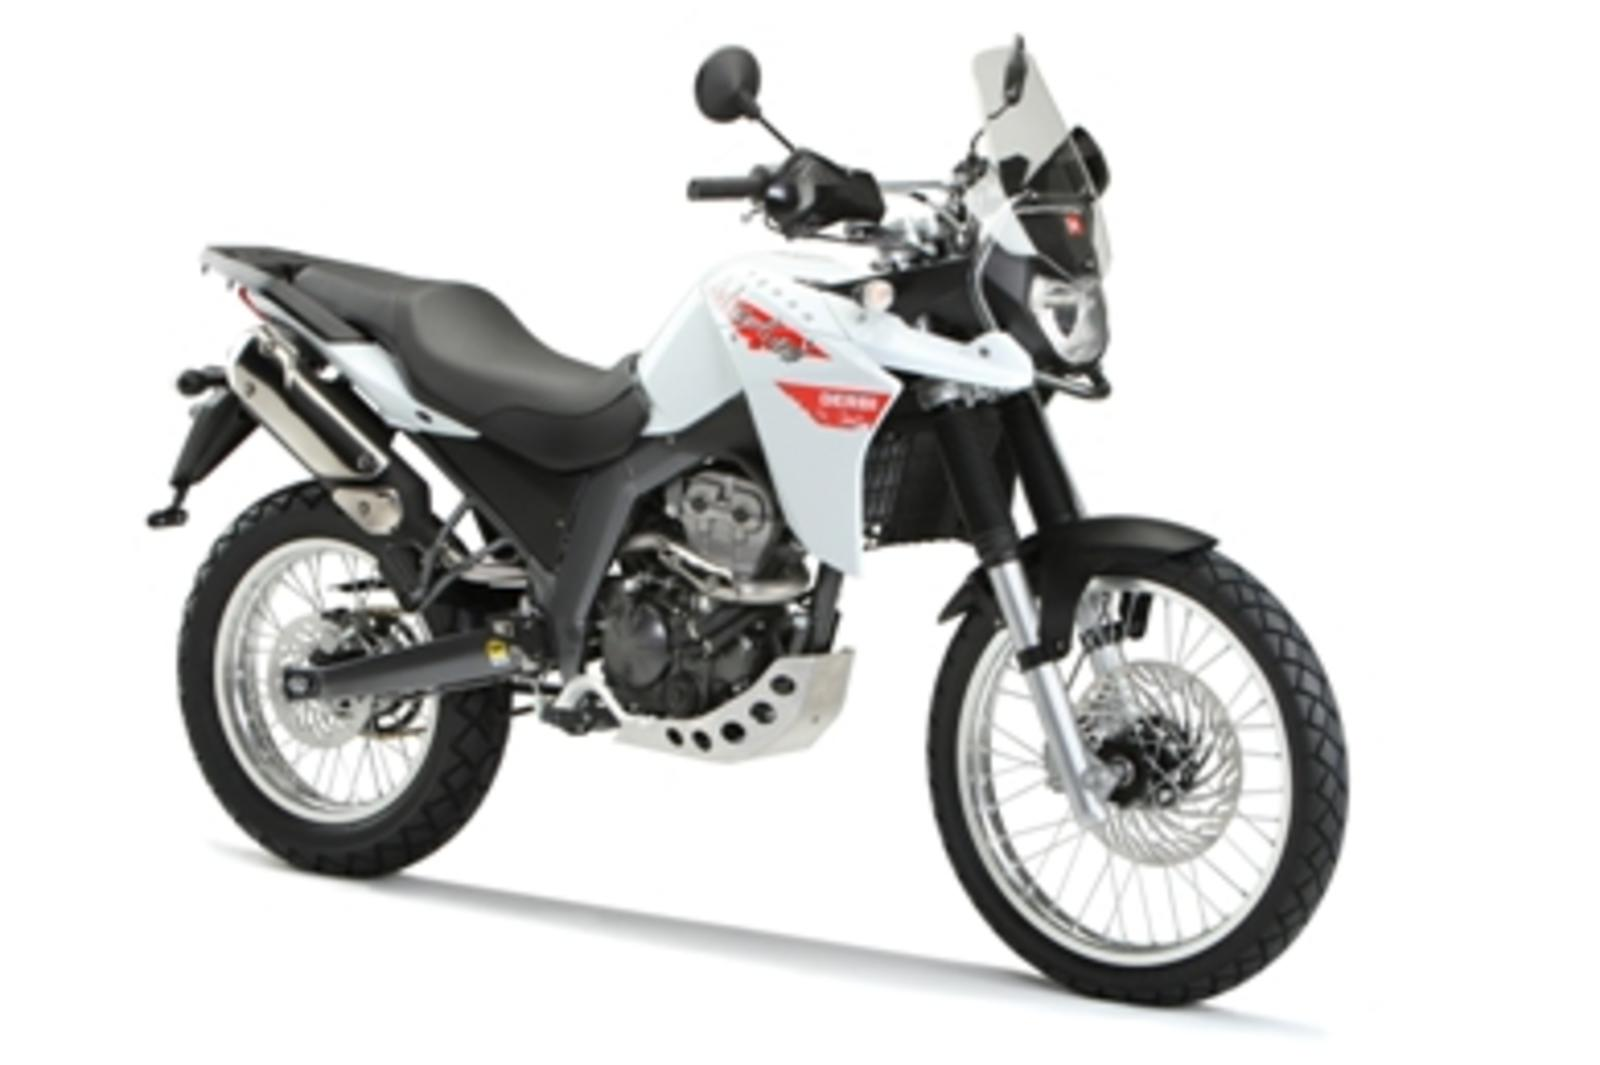 2013 derbi terra adventure 125 review top speed. Black Bedroom Furniture Sets. Home Design Ideas